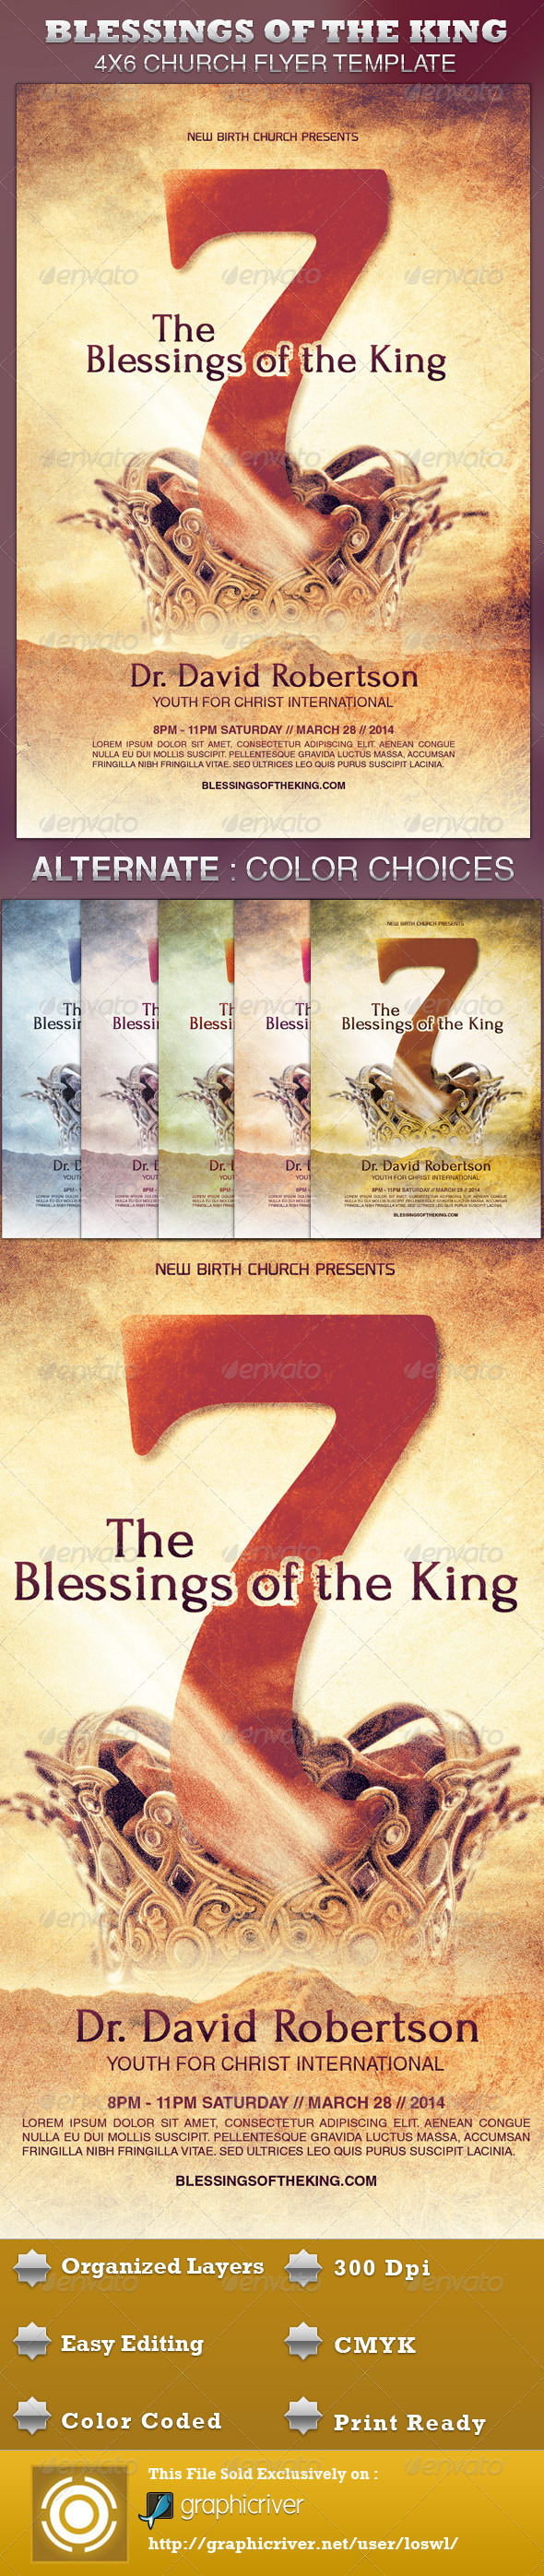 Seven Blessings of the King Church Flyer Template - Church Flyers